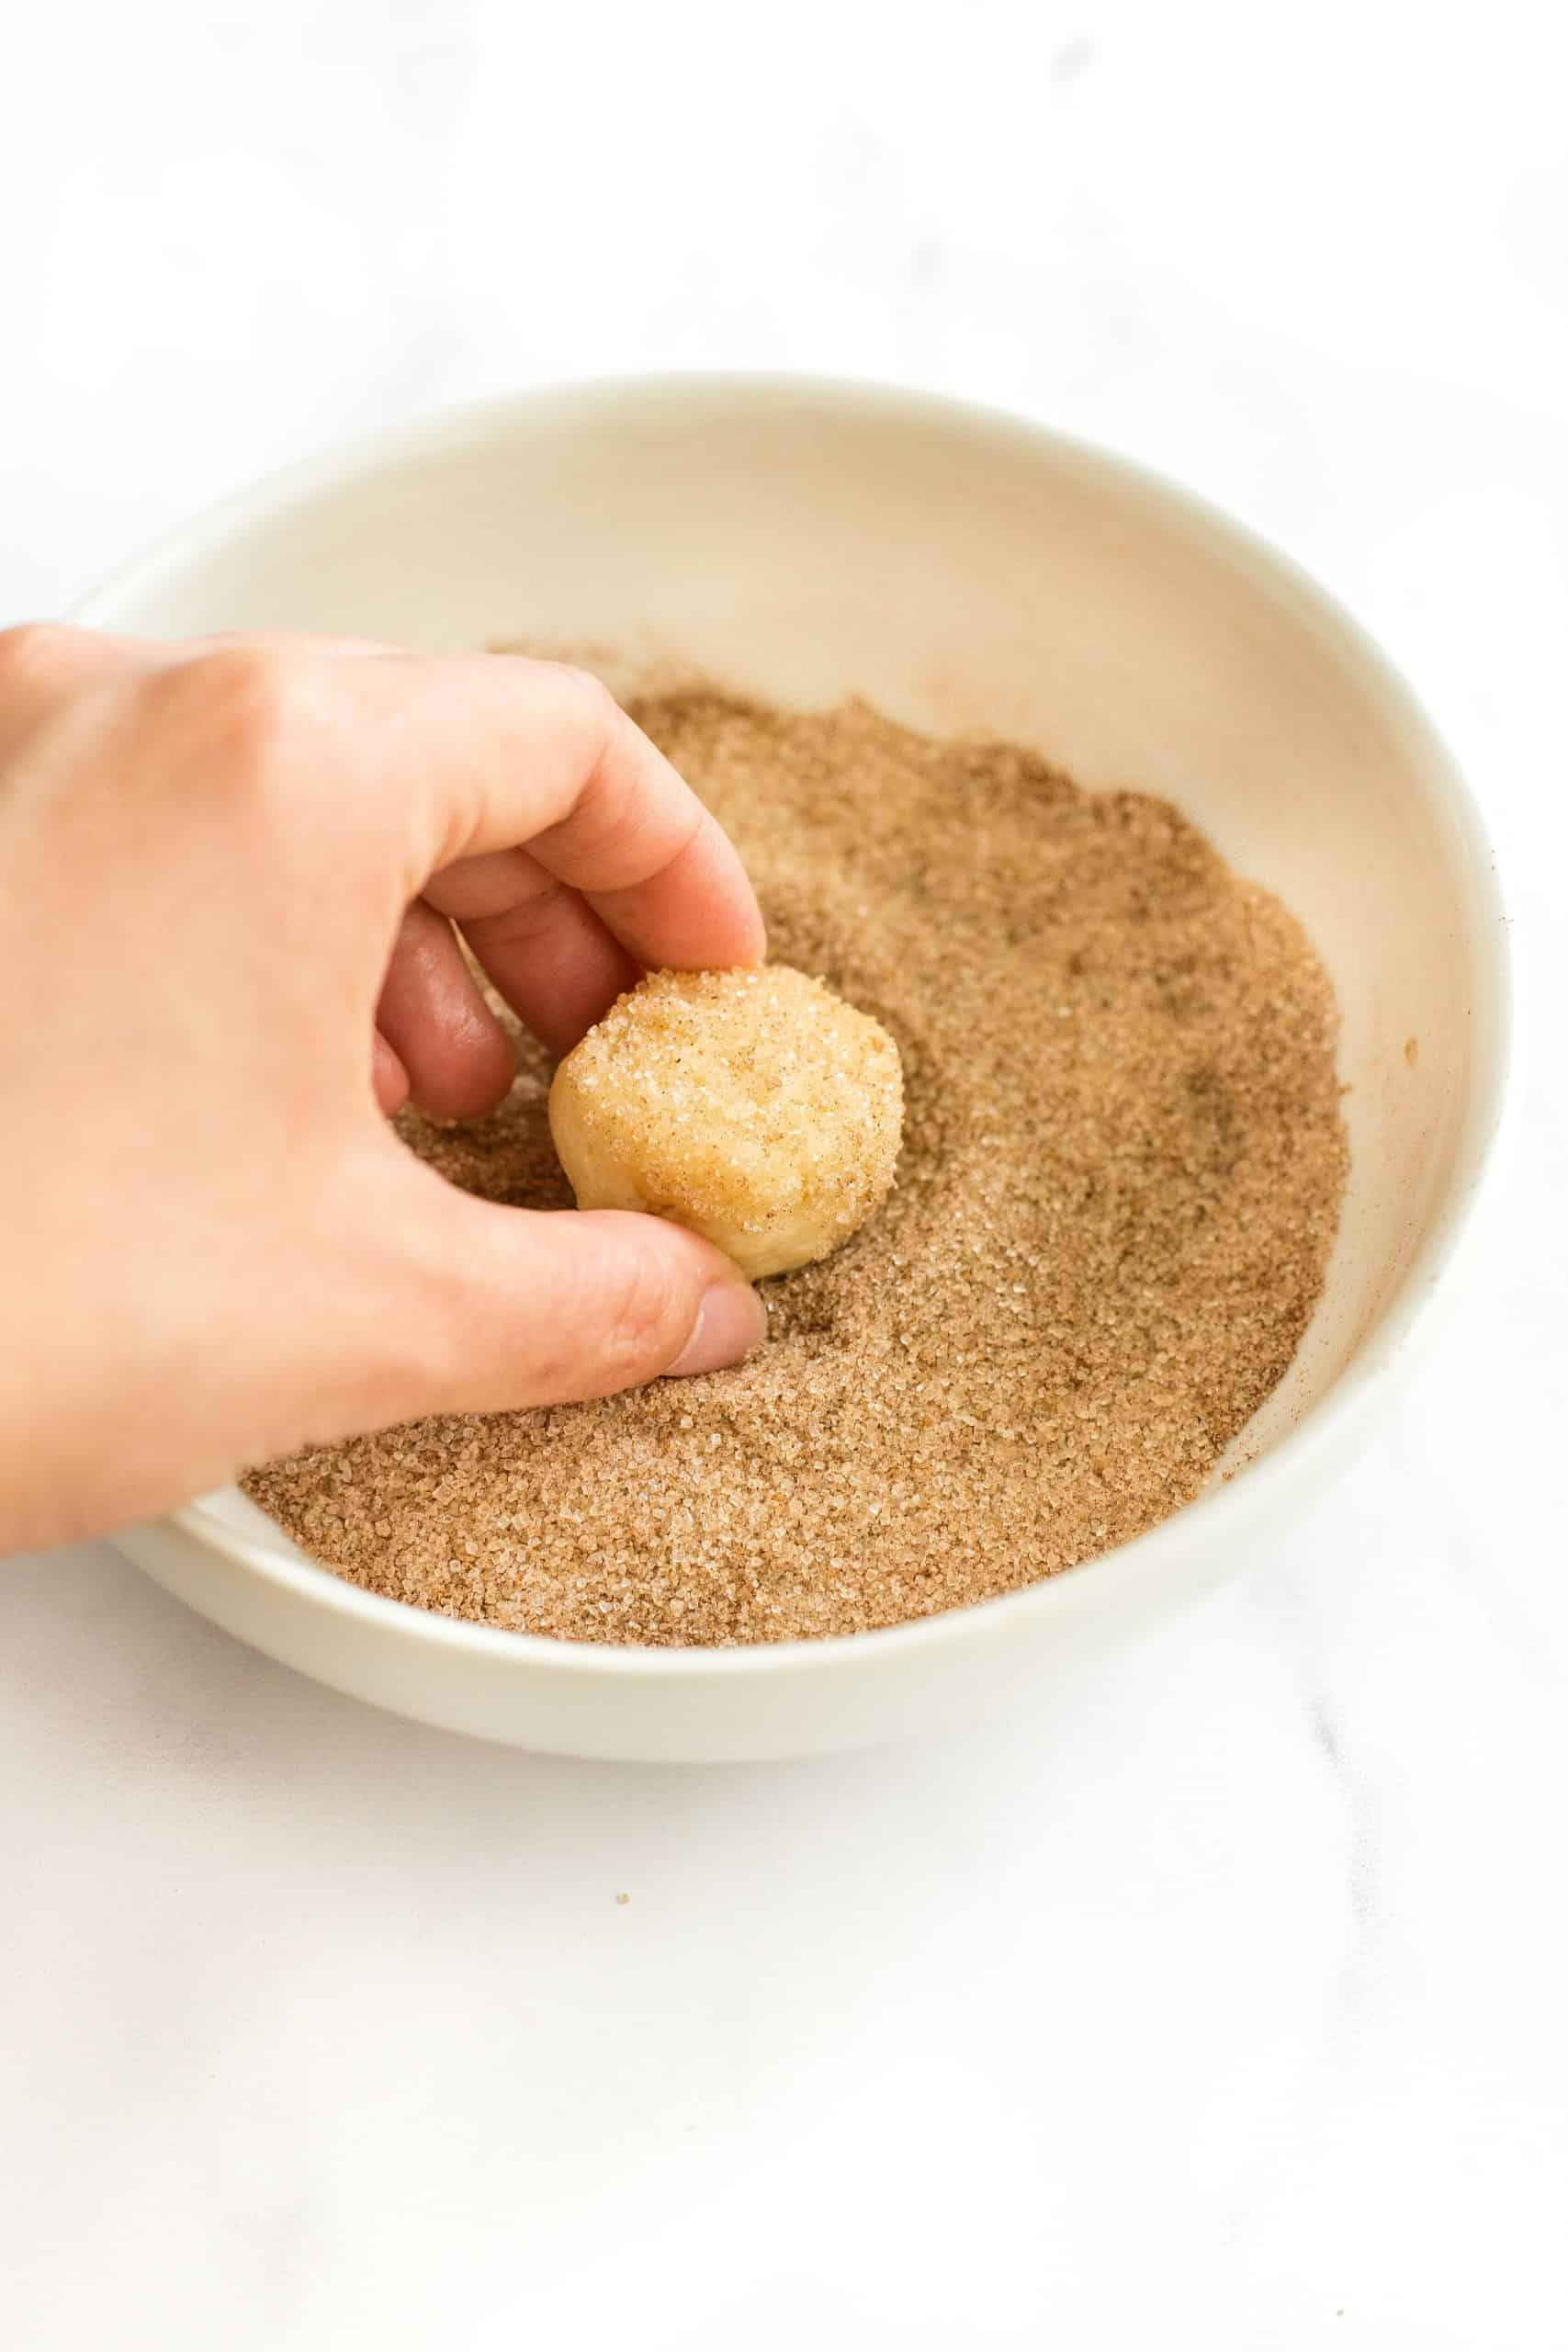 Rolling cookie dough ball in a cinnamon sugar mixture.